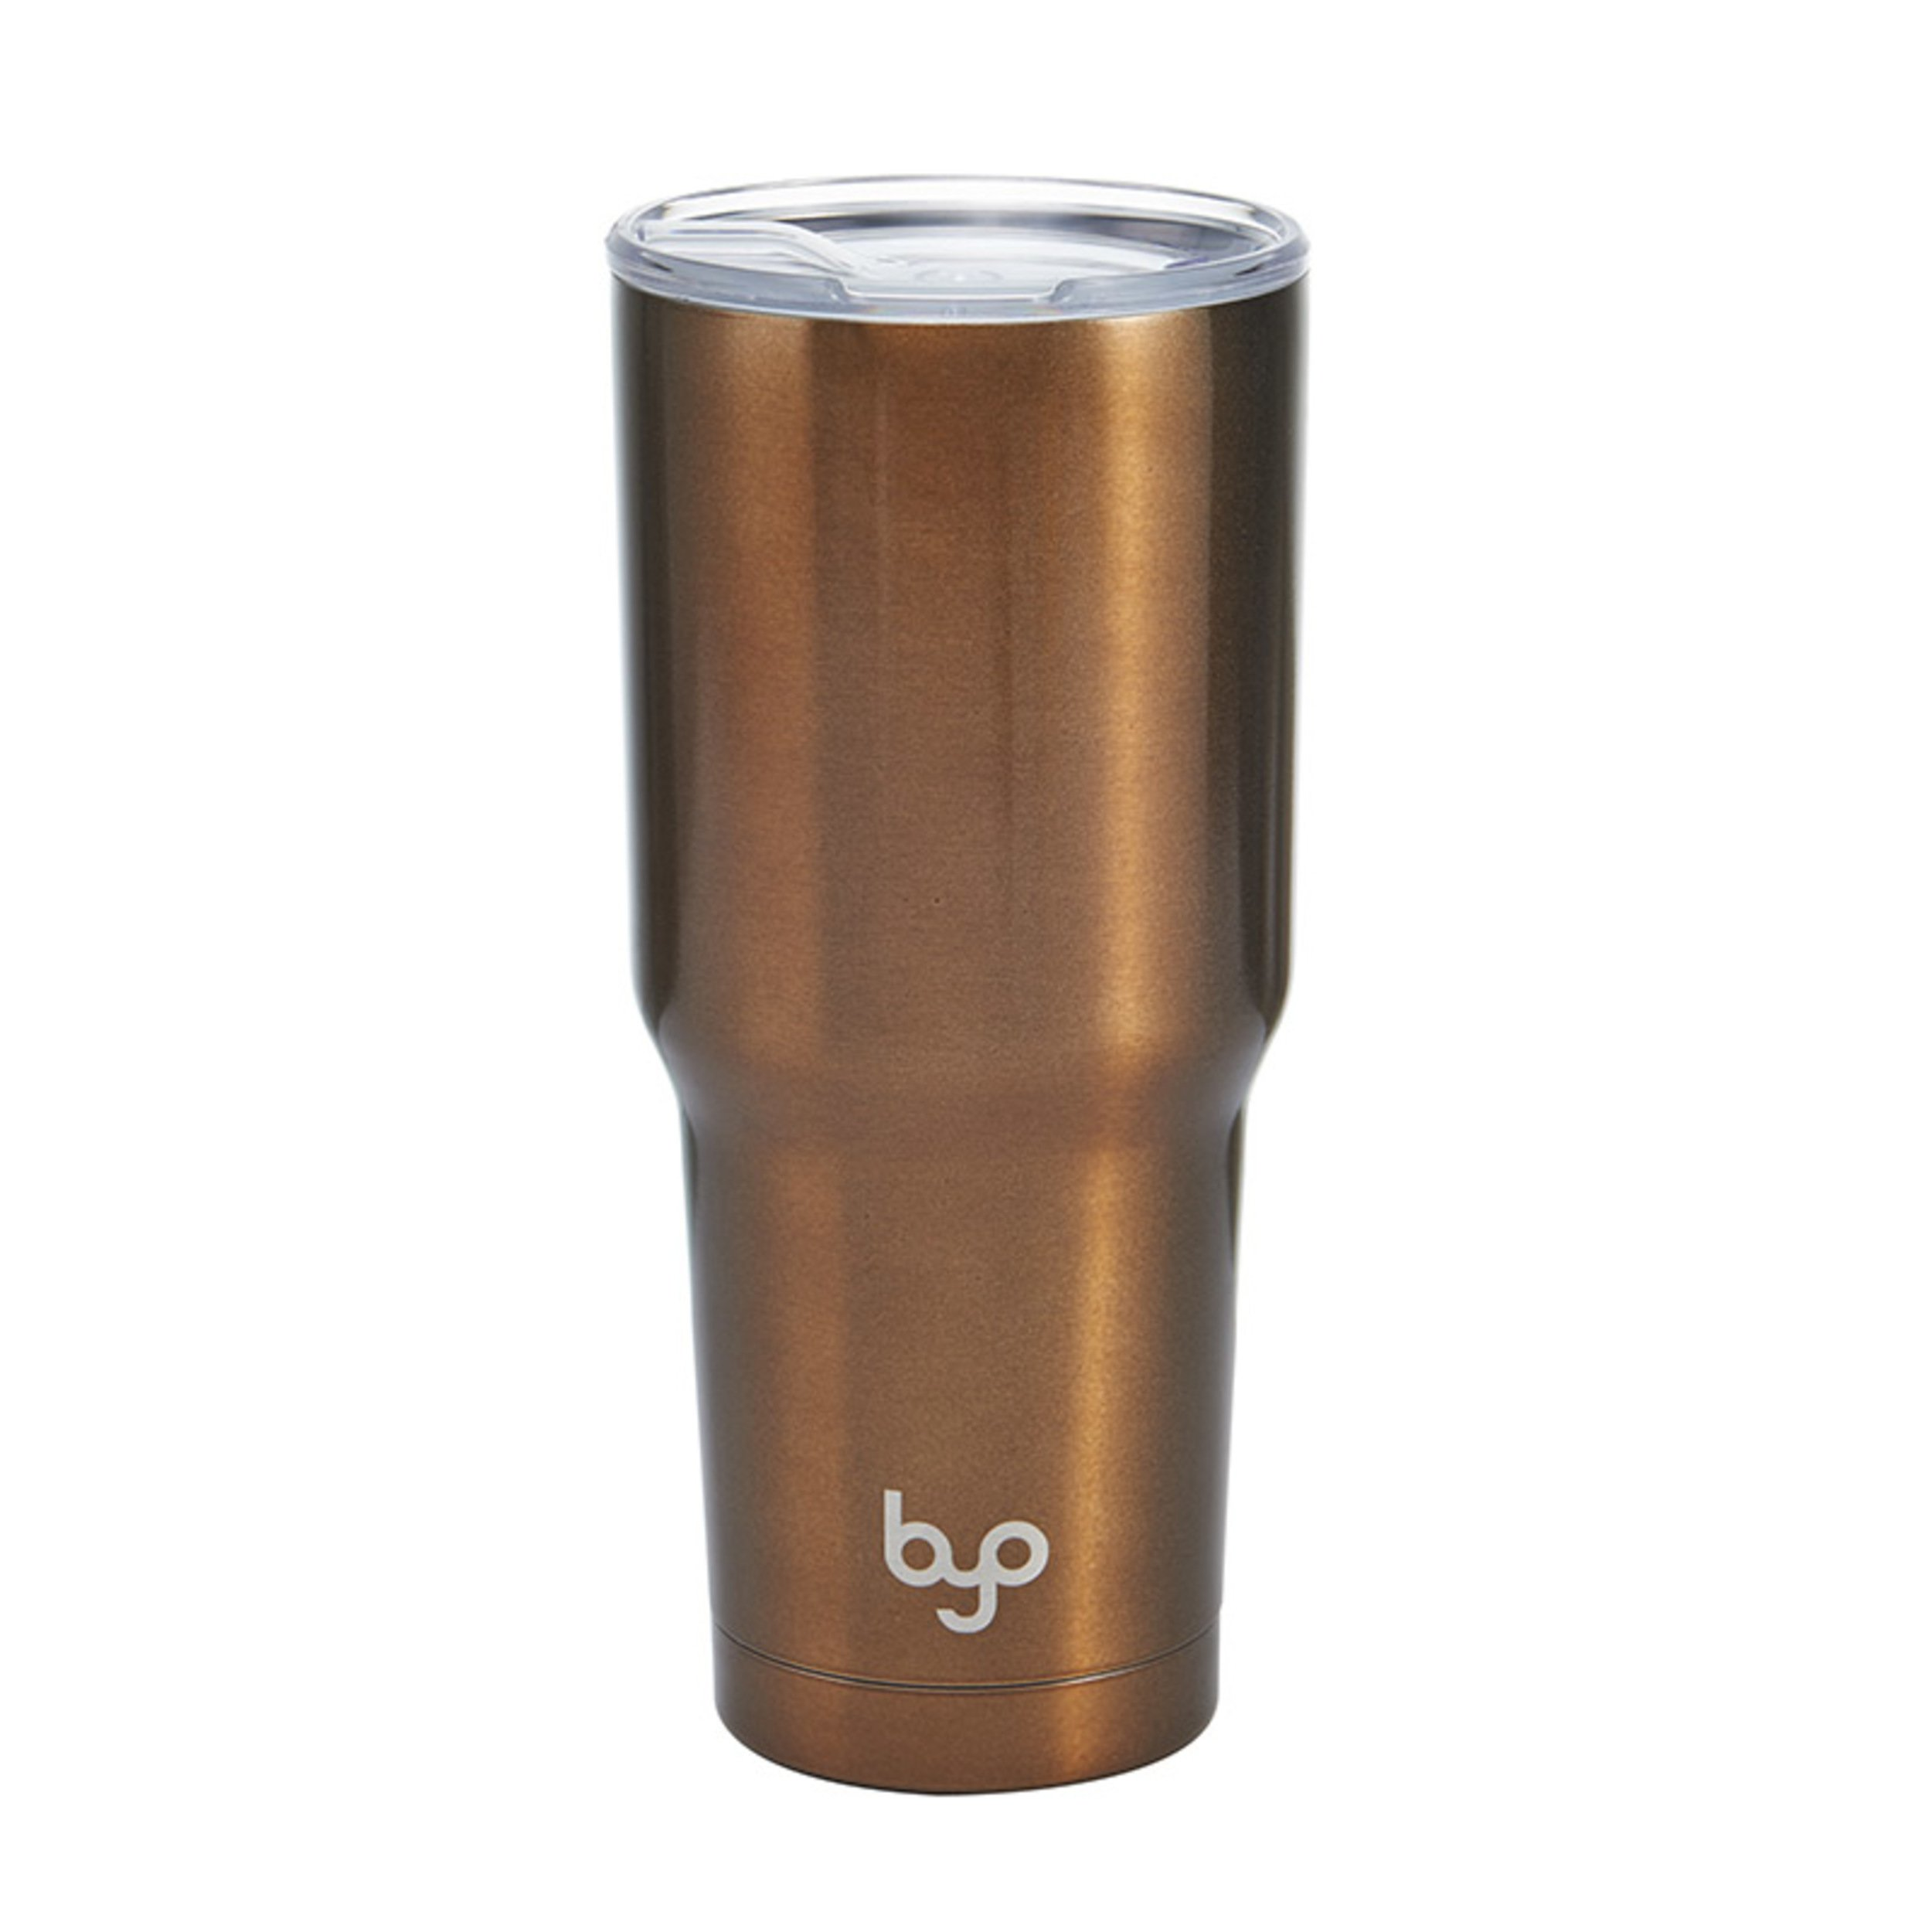 aa33fdb128b BYO 5227241 Double Wall Stainless Steel Vacuum Insulated Tumbler, 30-Ounce,  Bronze